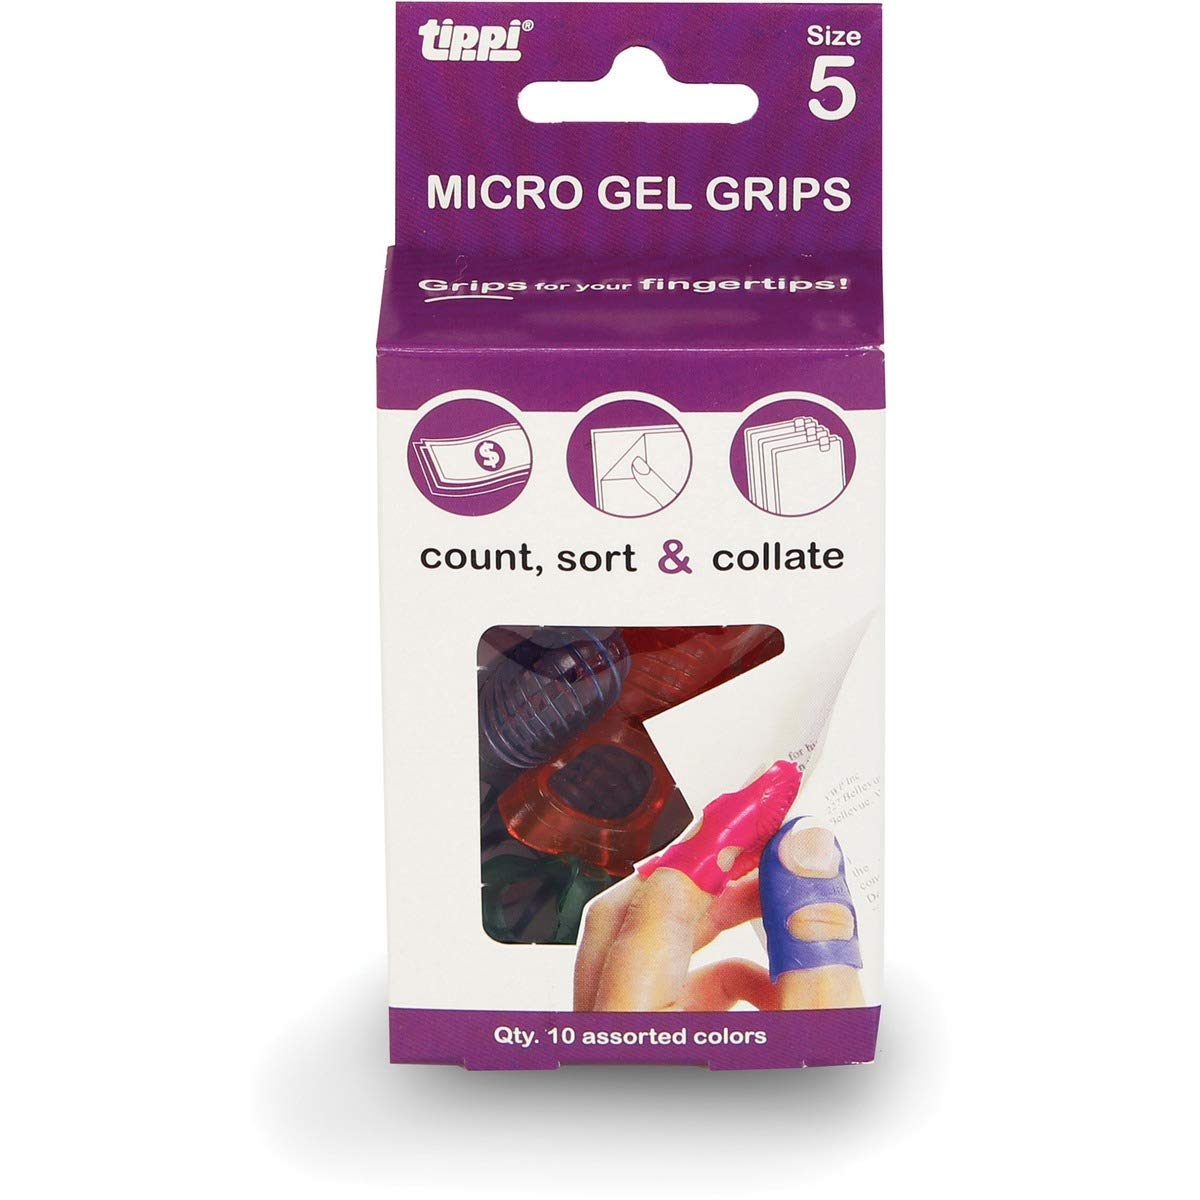 Lee Tippi Micro Gel Fingertip Grips - Size 5 Small - 10 Pack (S61050) (24) by Lee Products Co.